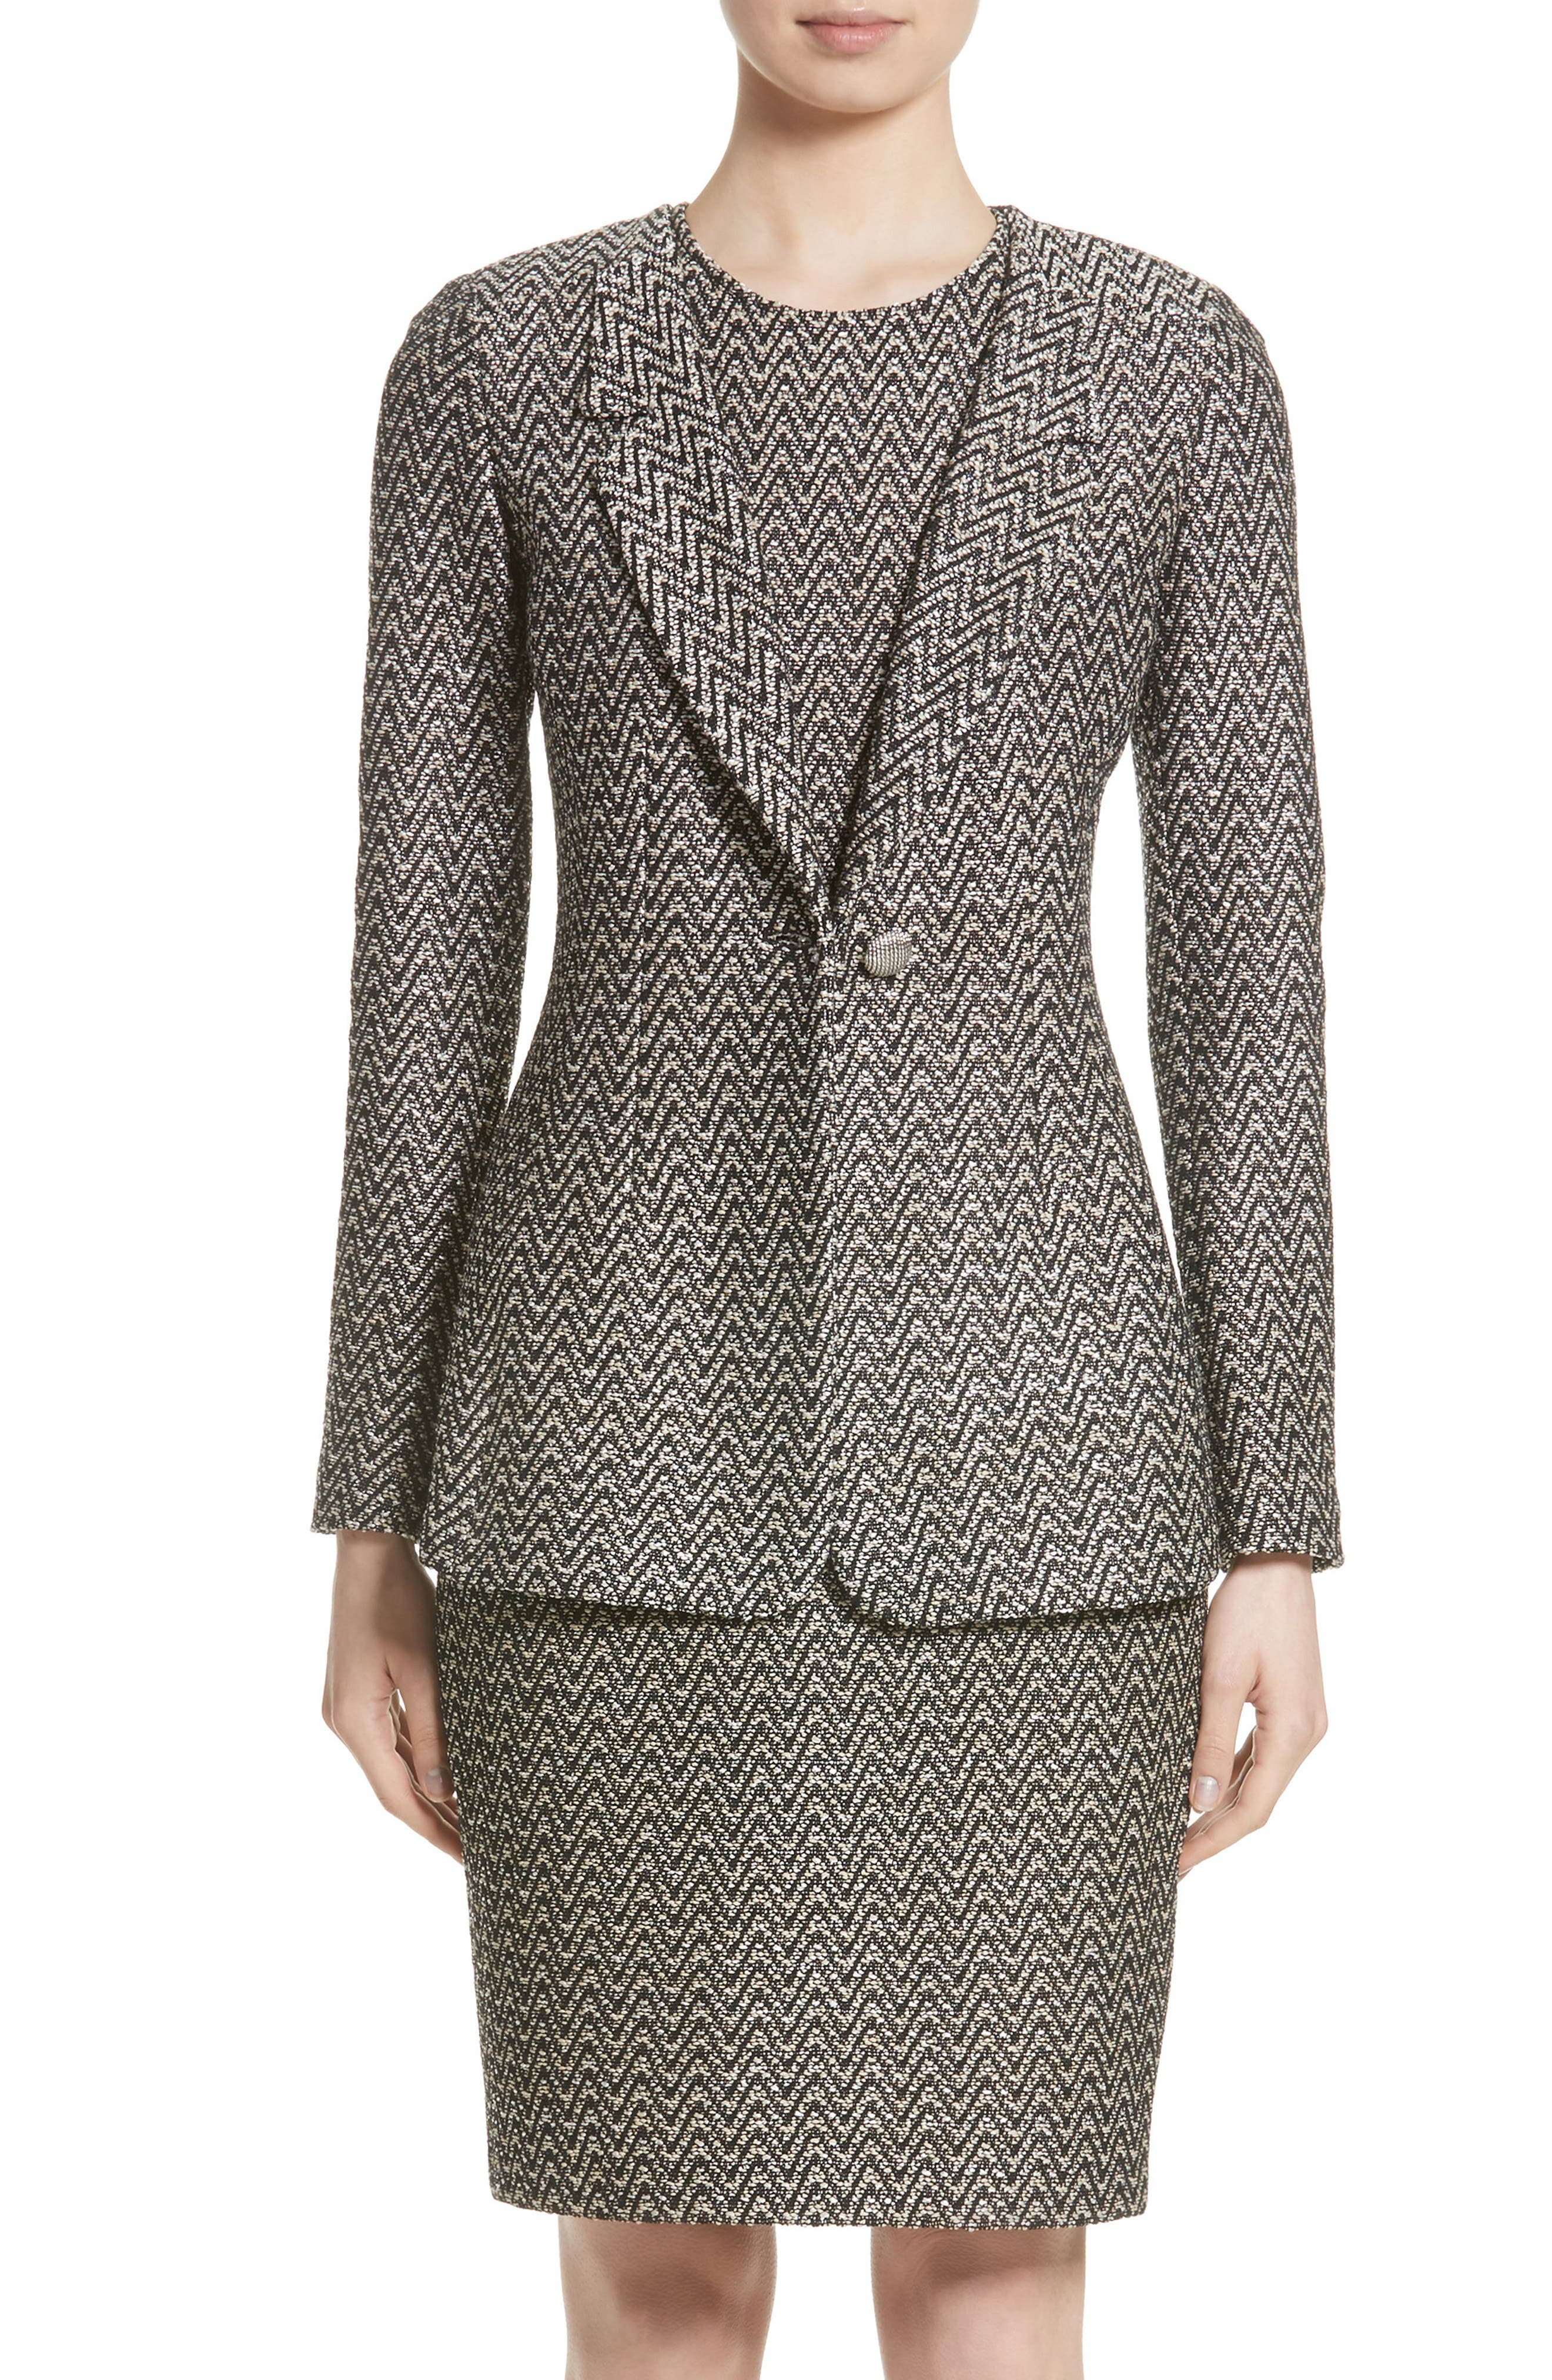 St. John Collection Aluna Speckled Chevron Tweed Knit Jacket (Nordstrom Exclusive)